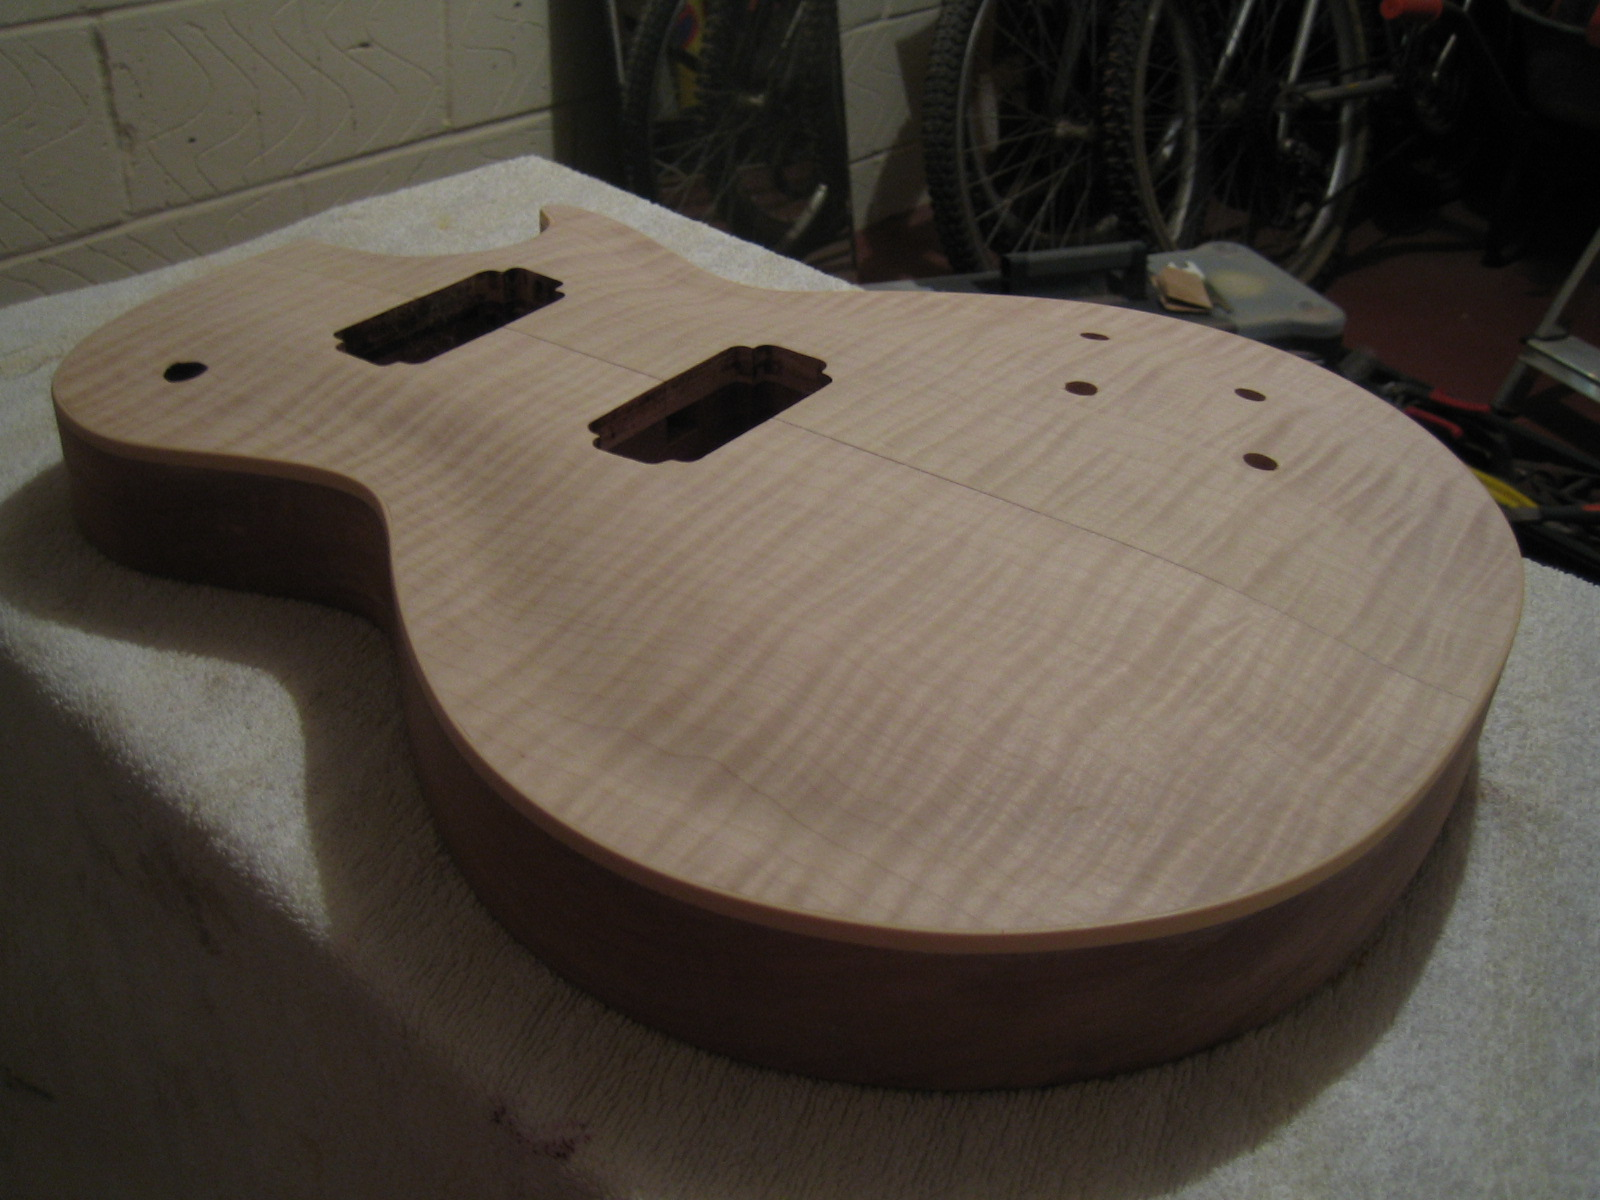 how to add binding to a guitar body